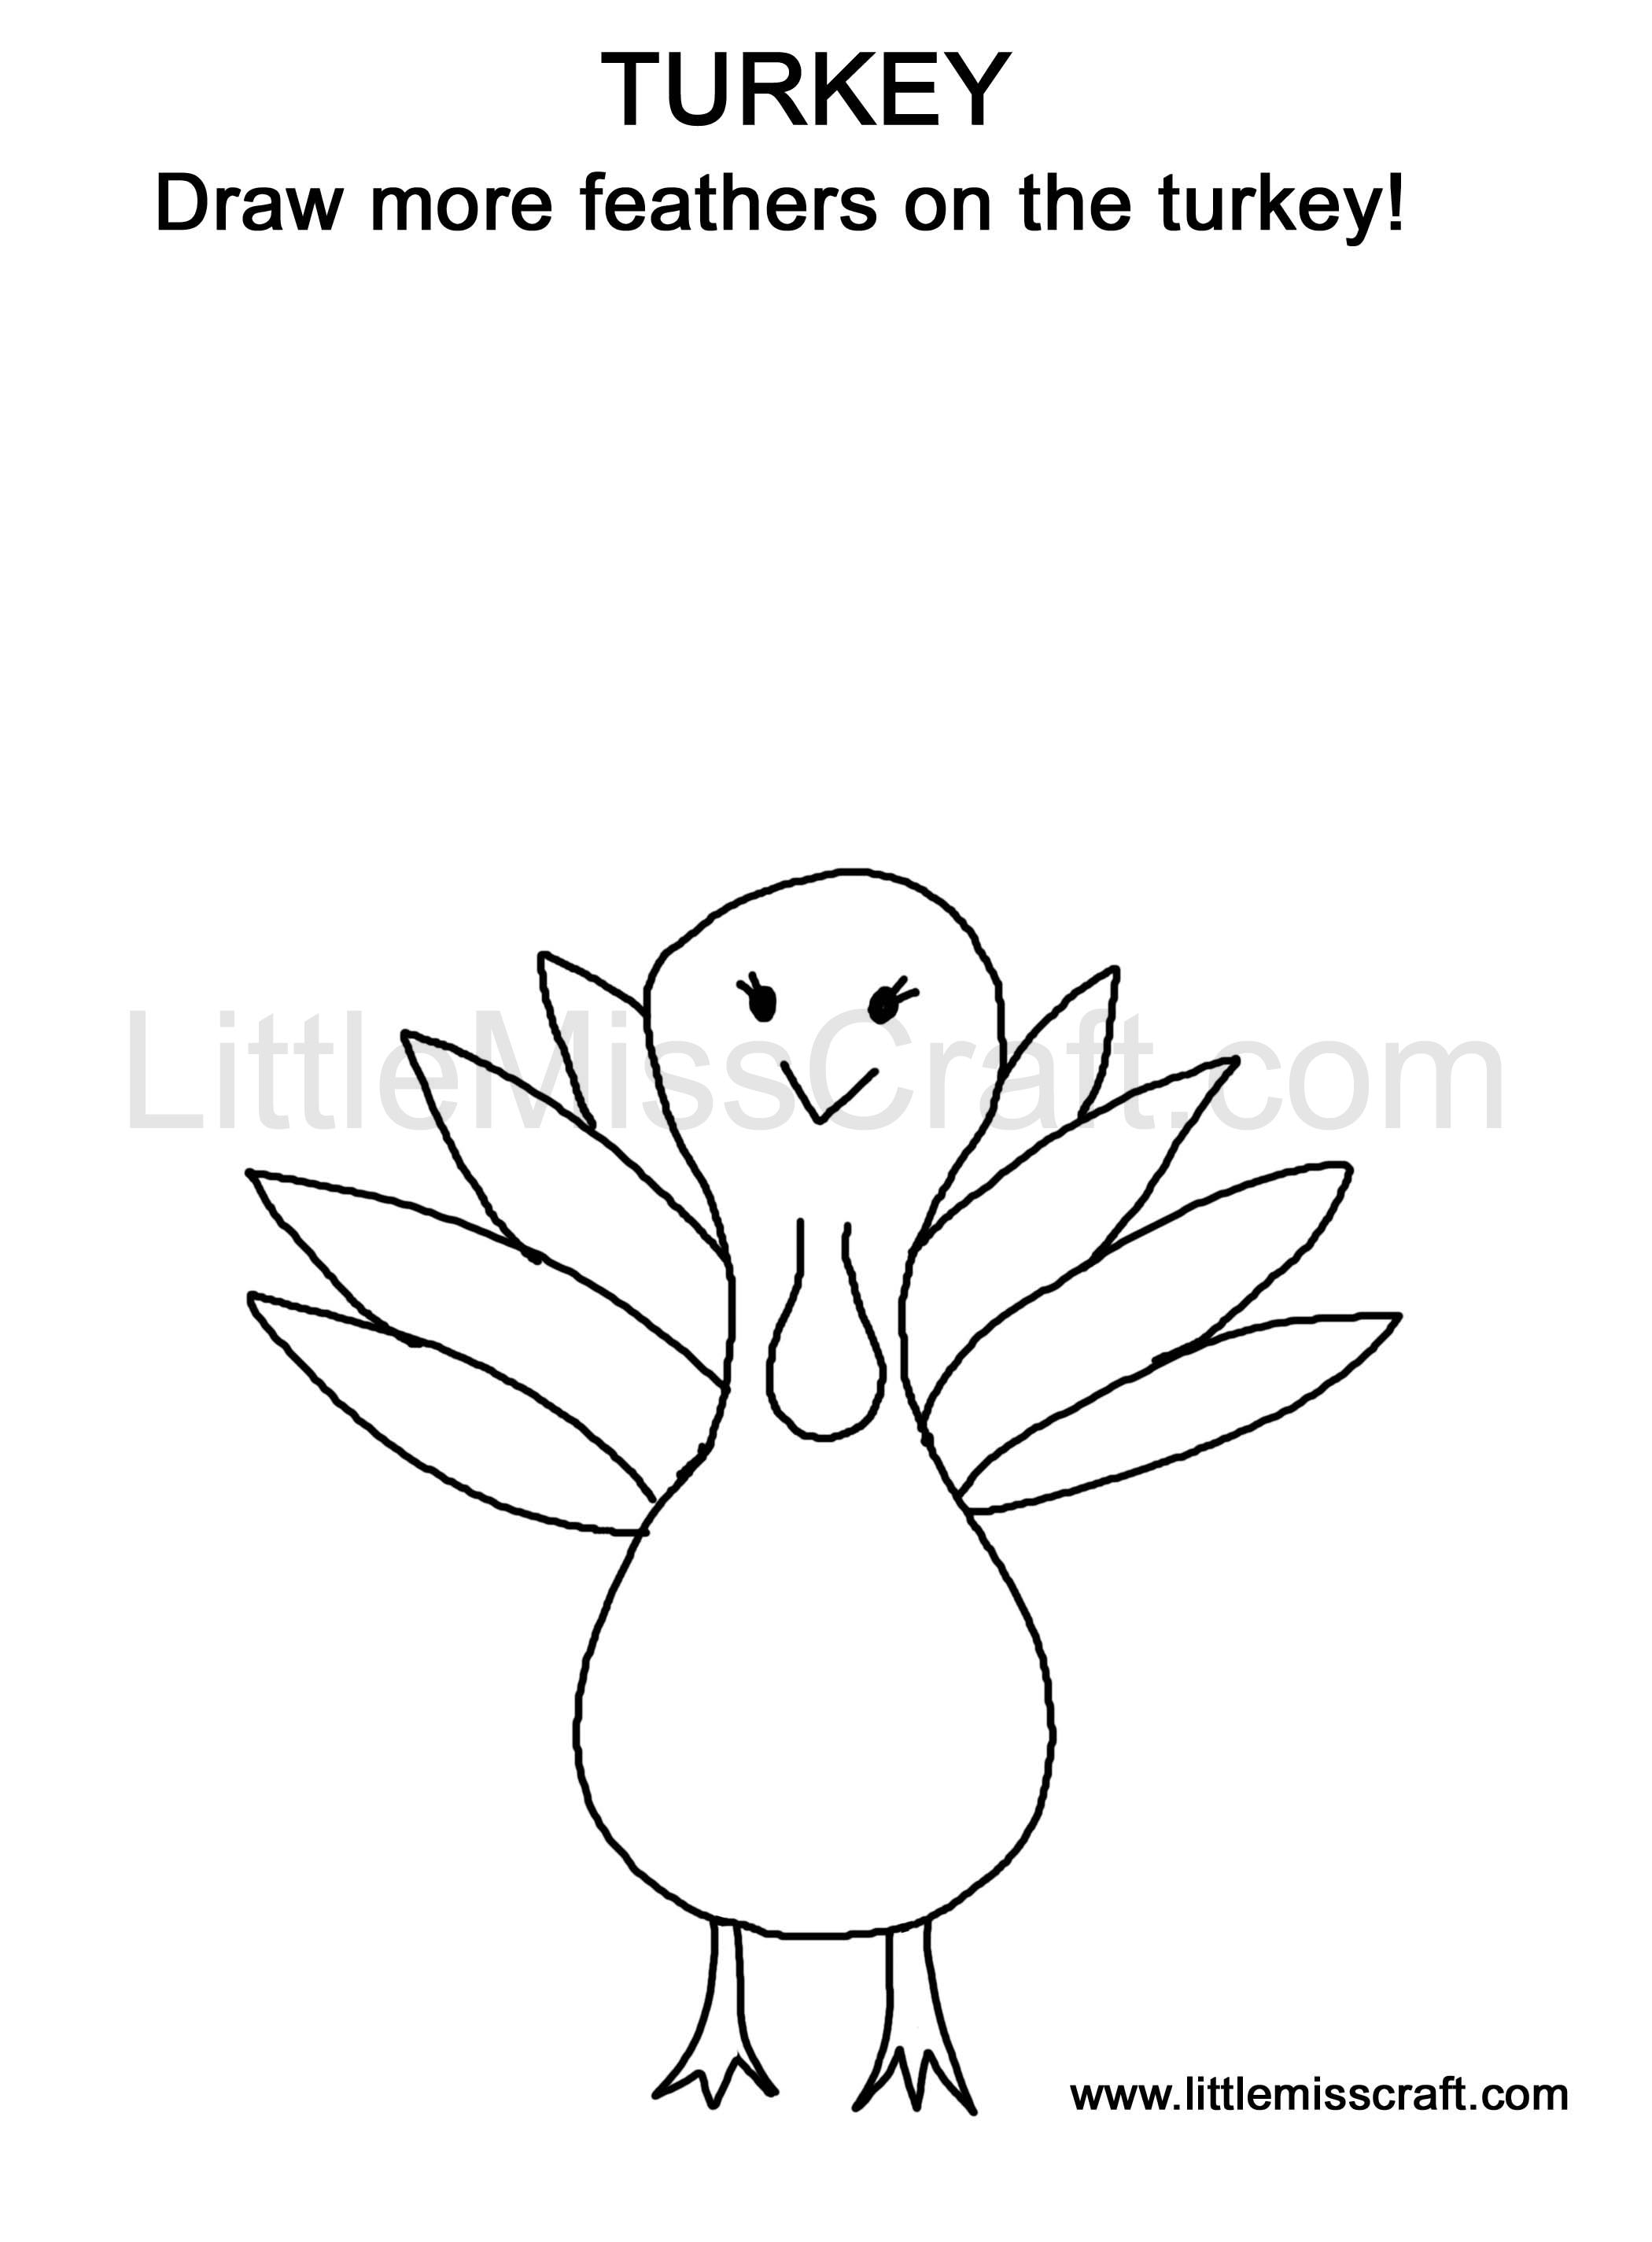 crafts thanksgiving turkey doodle coloring page